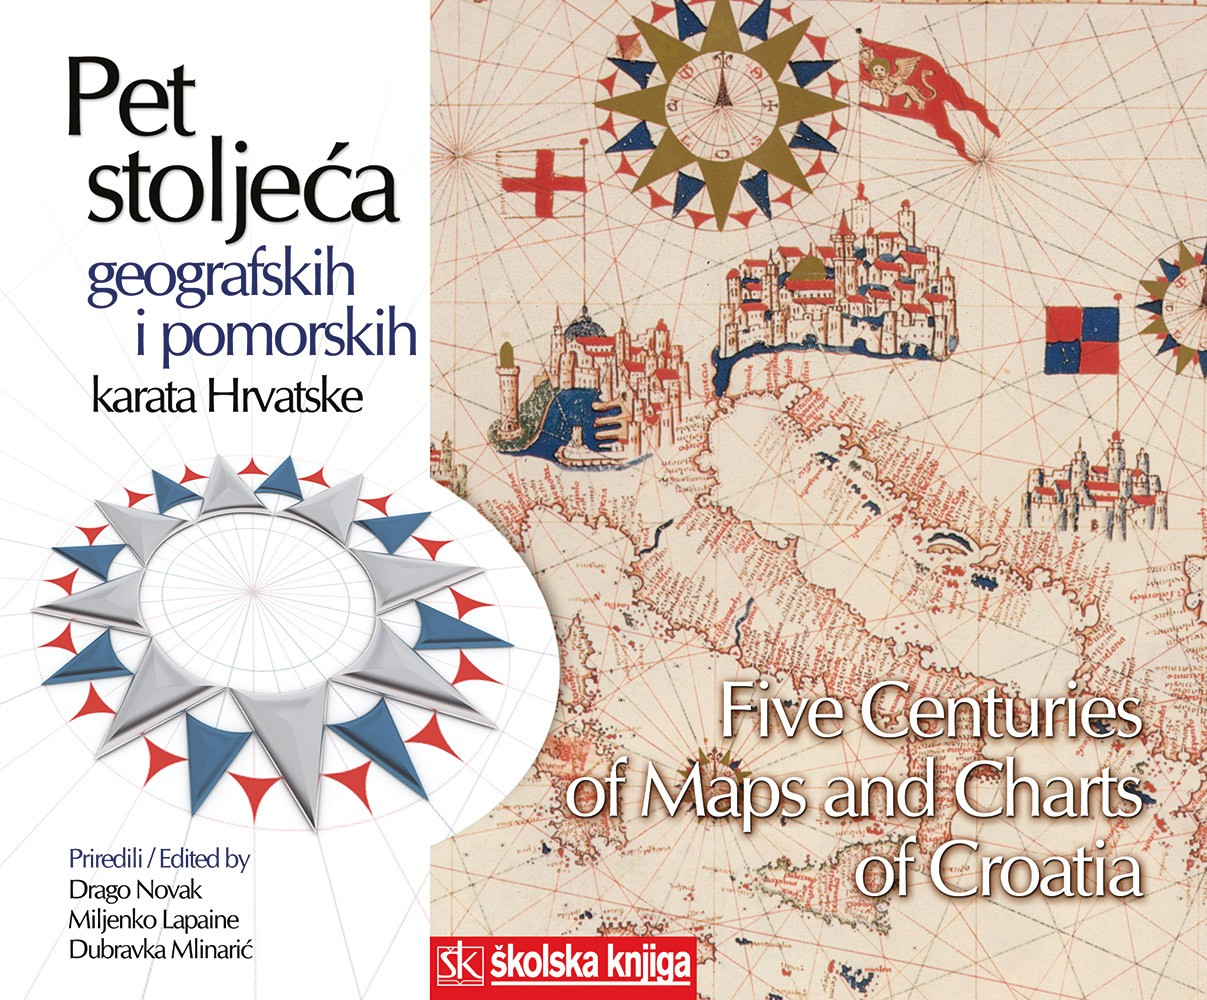 Pet stoljeća geografskih i pomorskih karata Hrvatske/ Five Centuries of Maps and Charts of Croatia